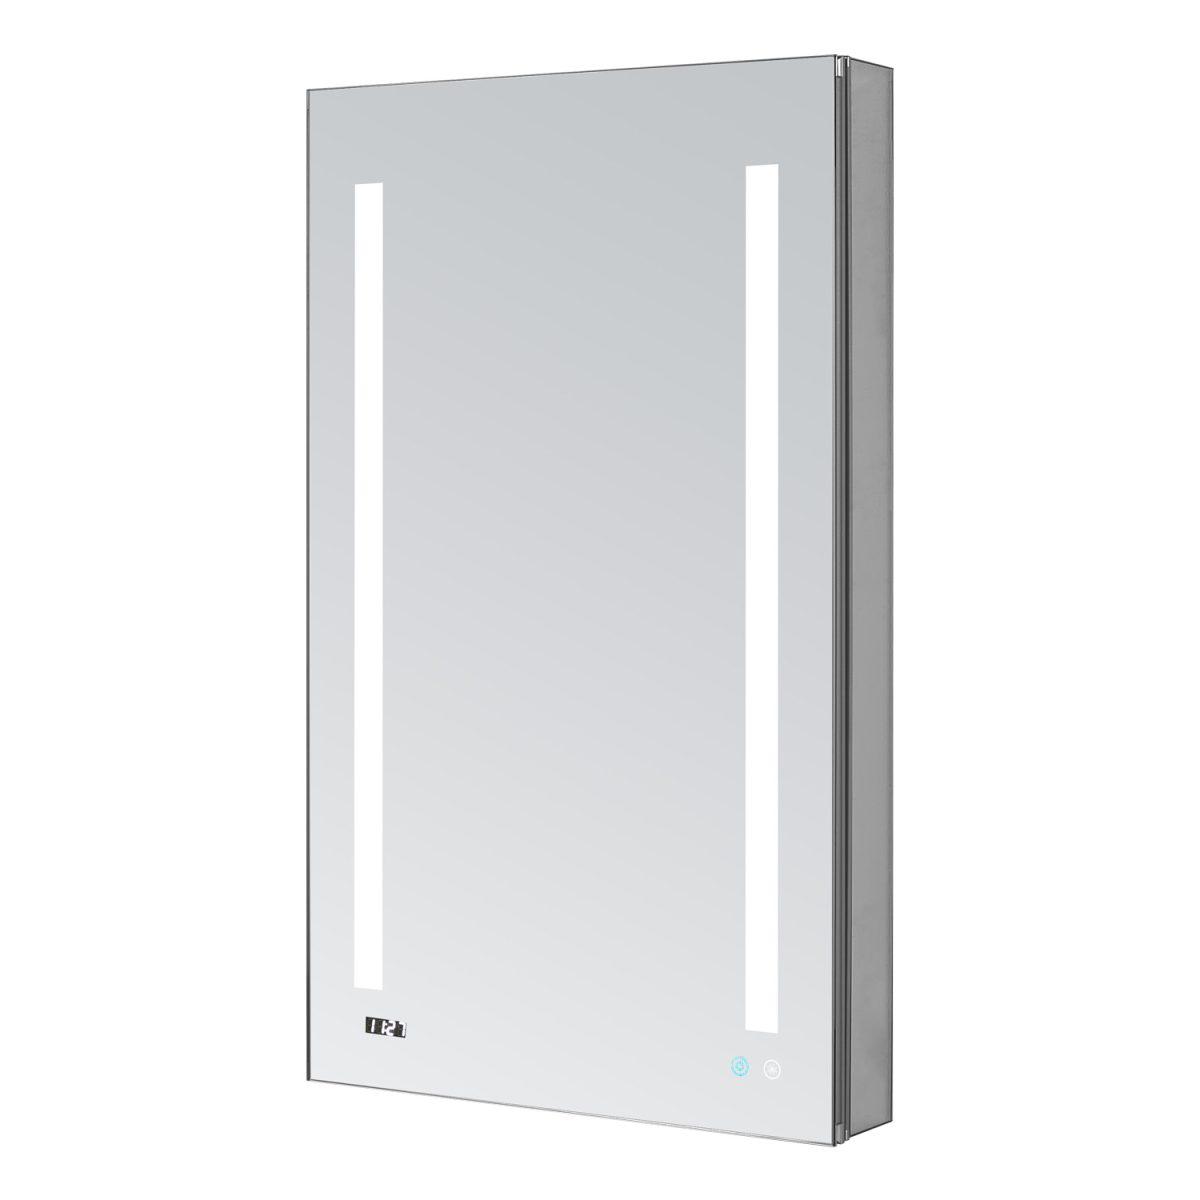 AQUADOM Signature Royale 24 inches x 30 inches Left Sided LED Lighted Mirror Glass Medicine Cabinet for Bathroom